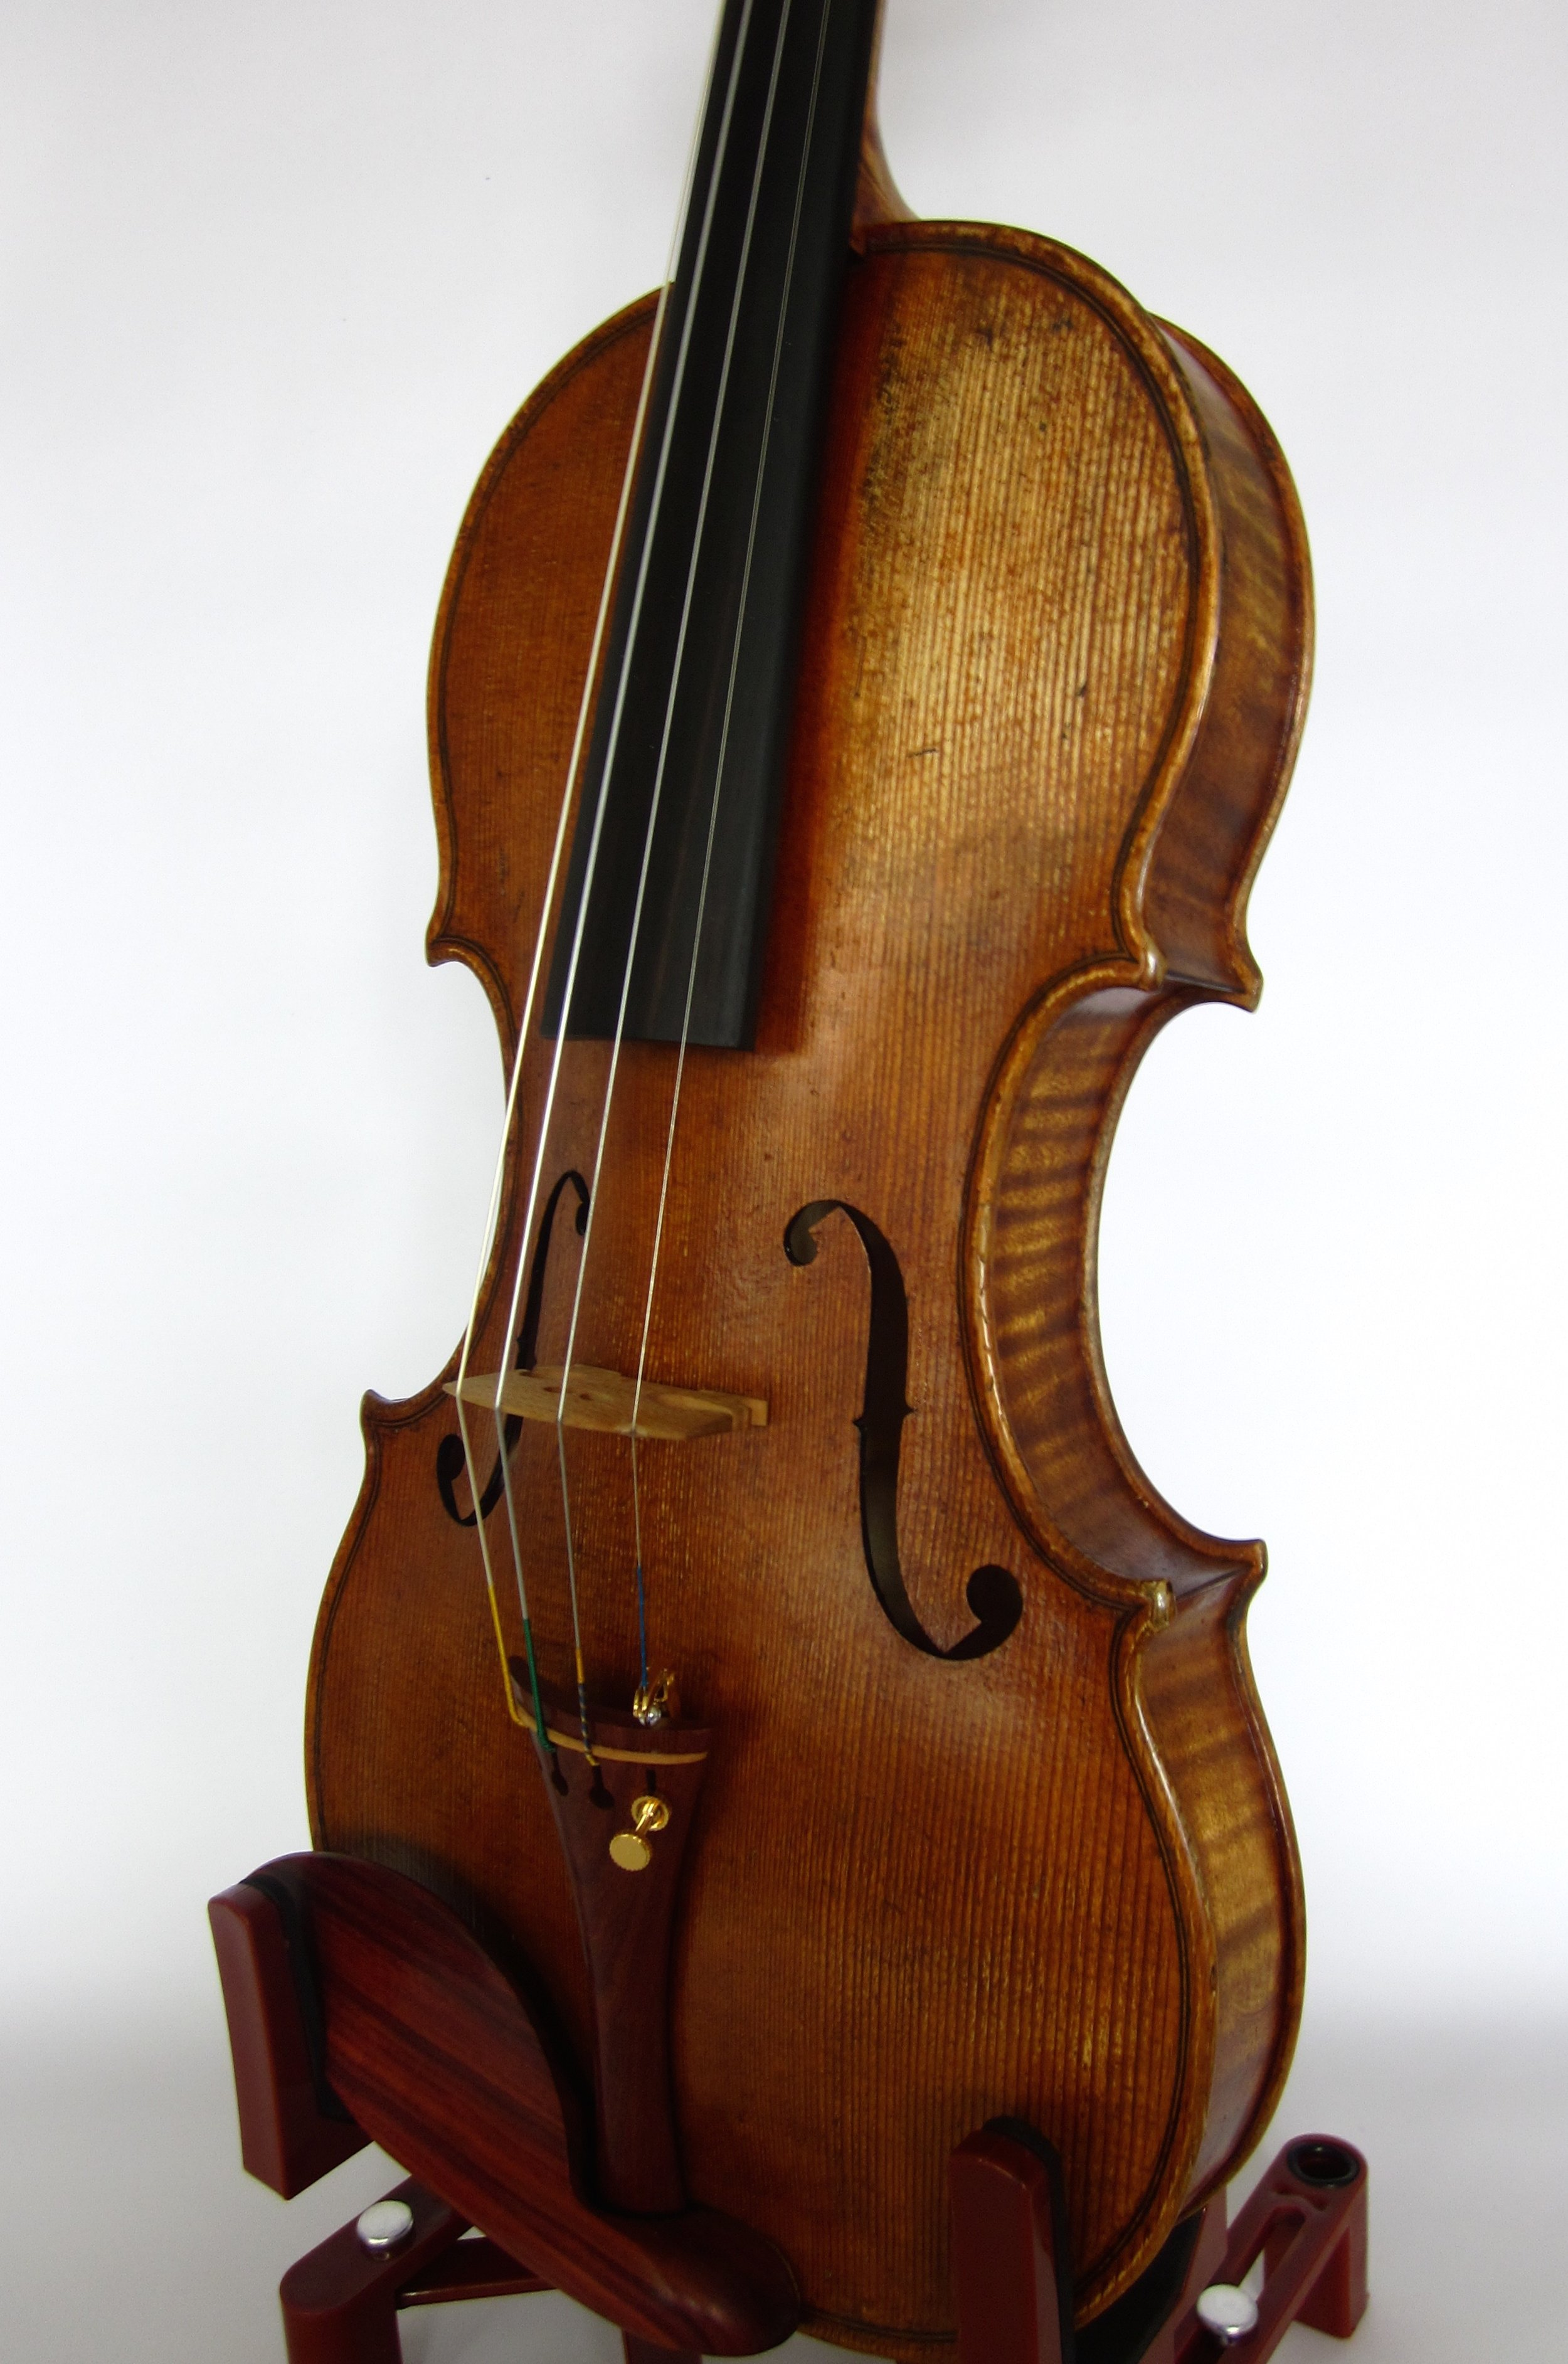 Guarneri del Gesu model violin-2016